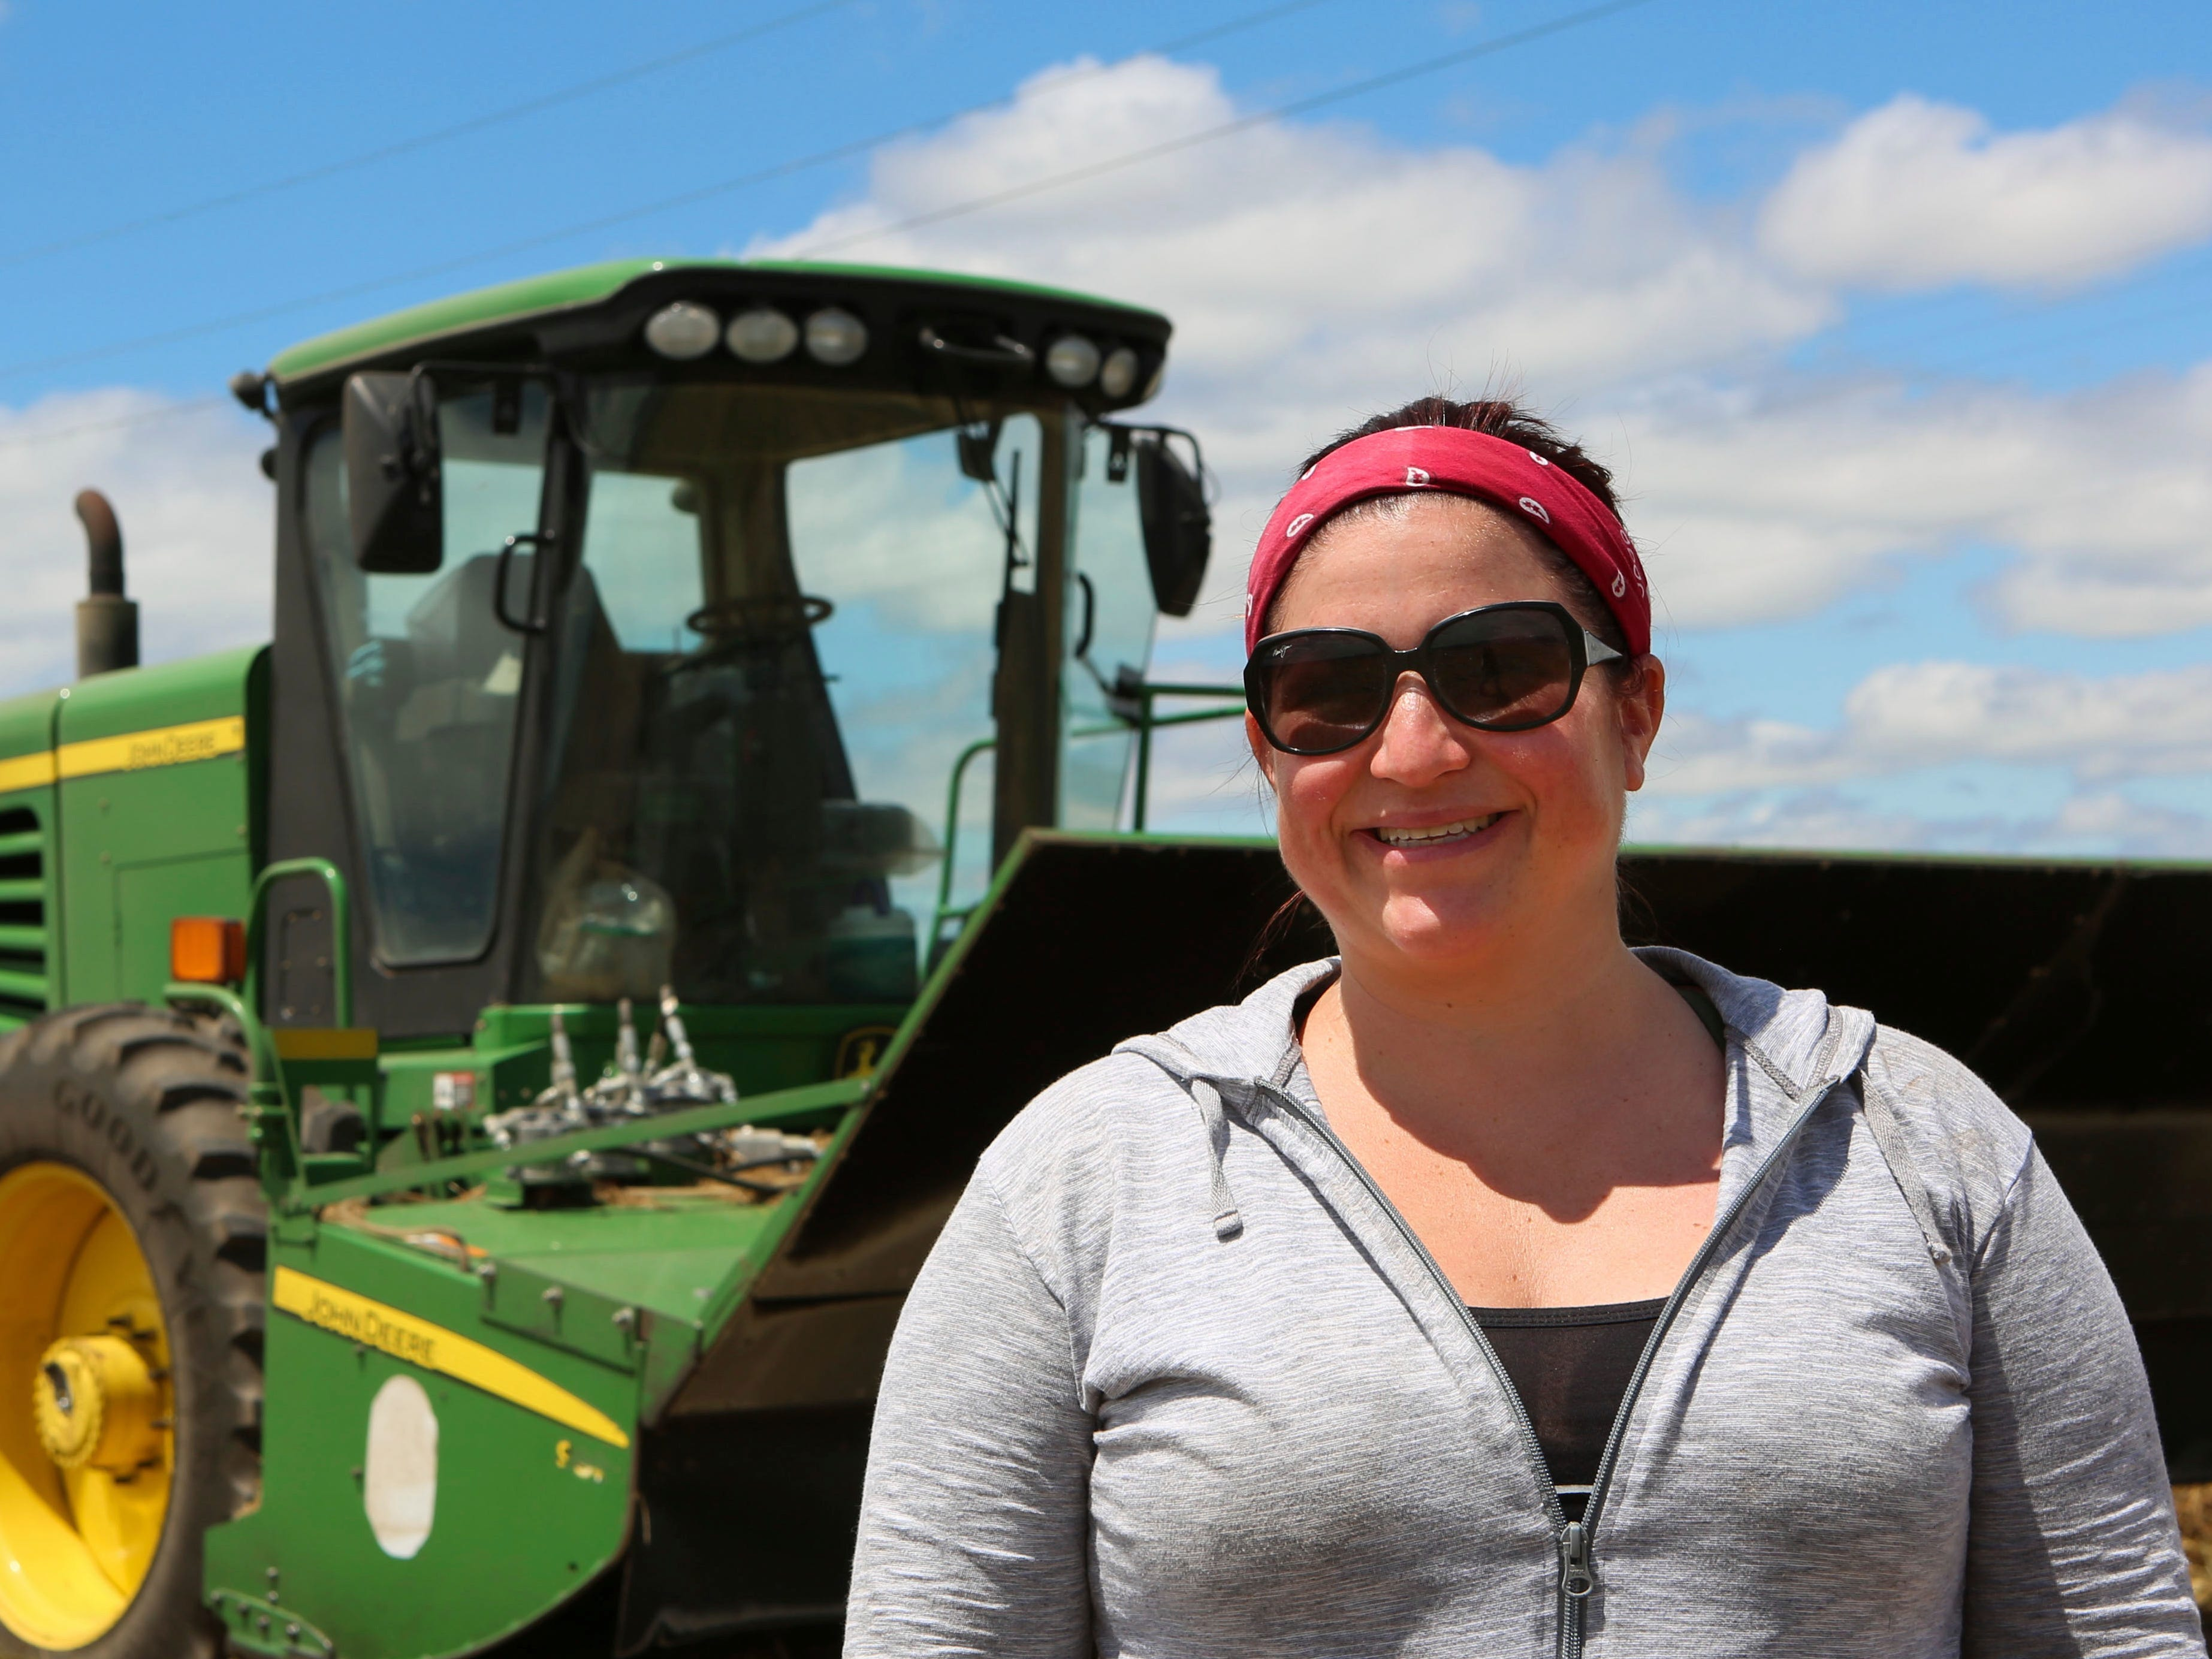 Eugene, Oregon woman returns to roots, find happiness in farm work